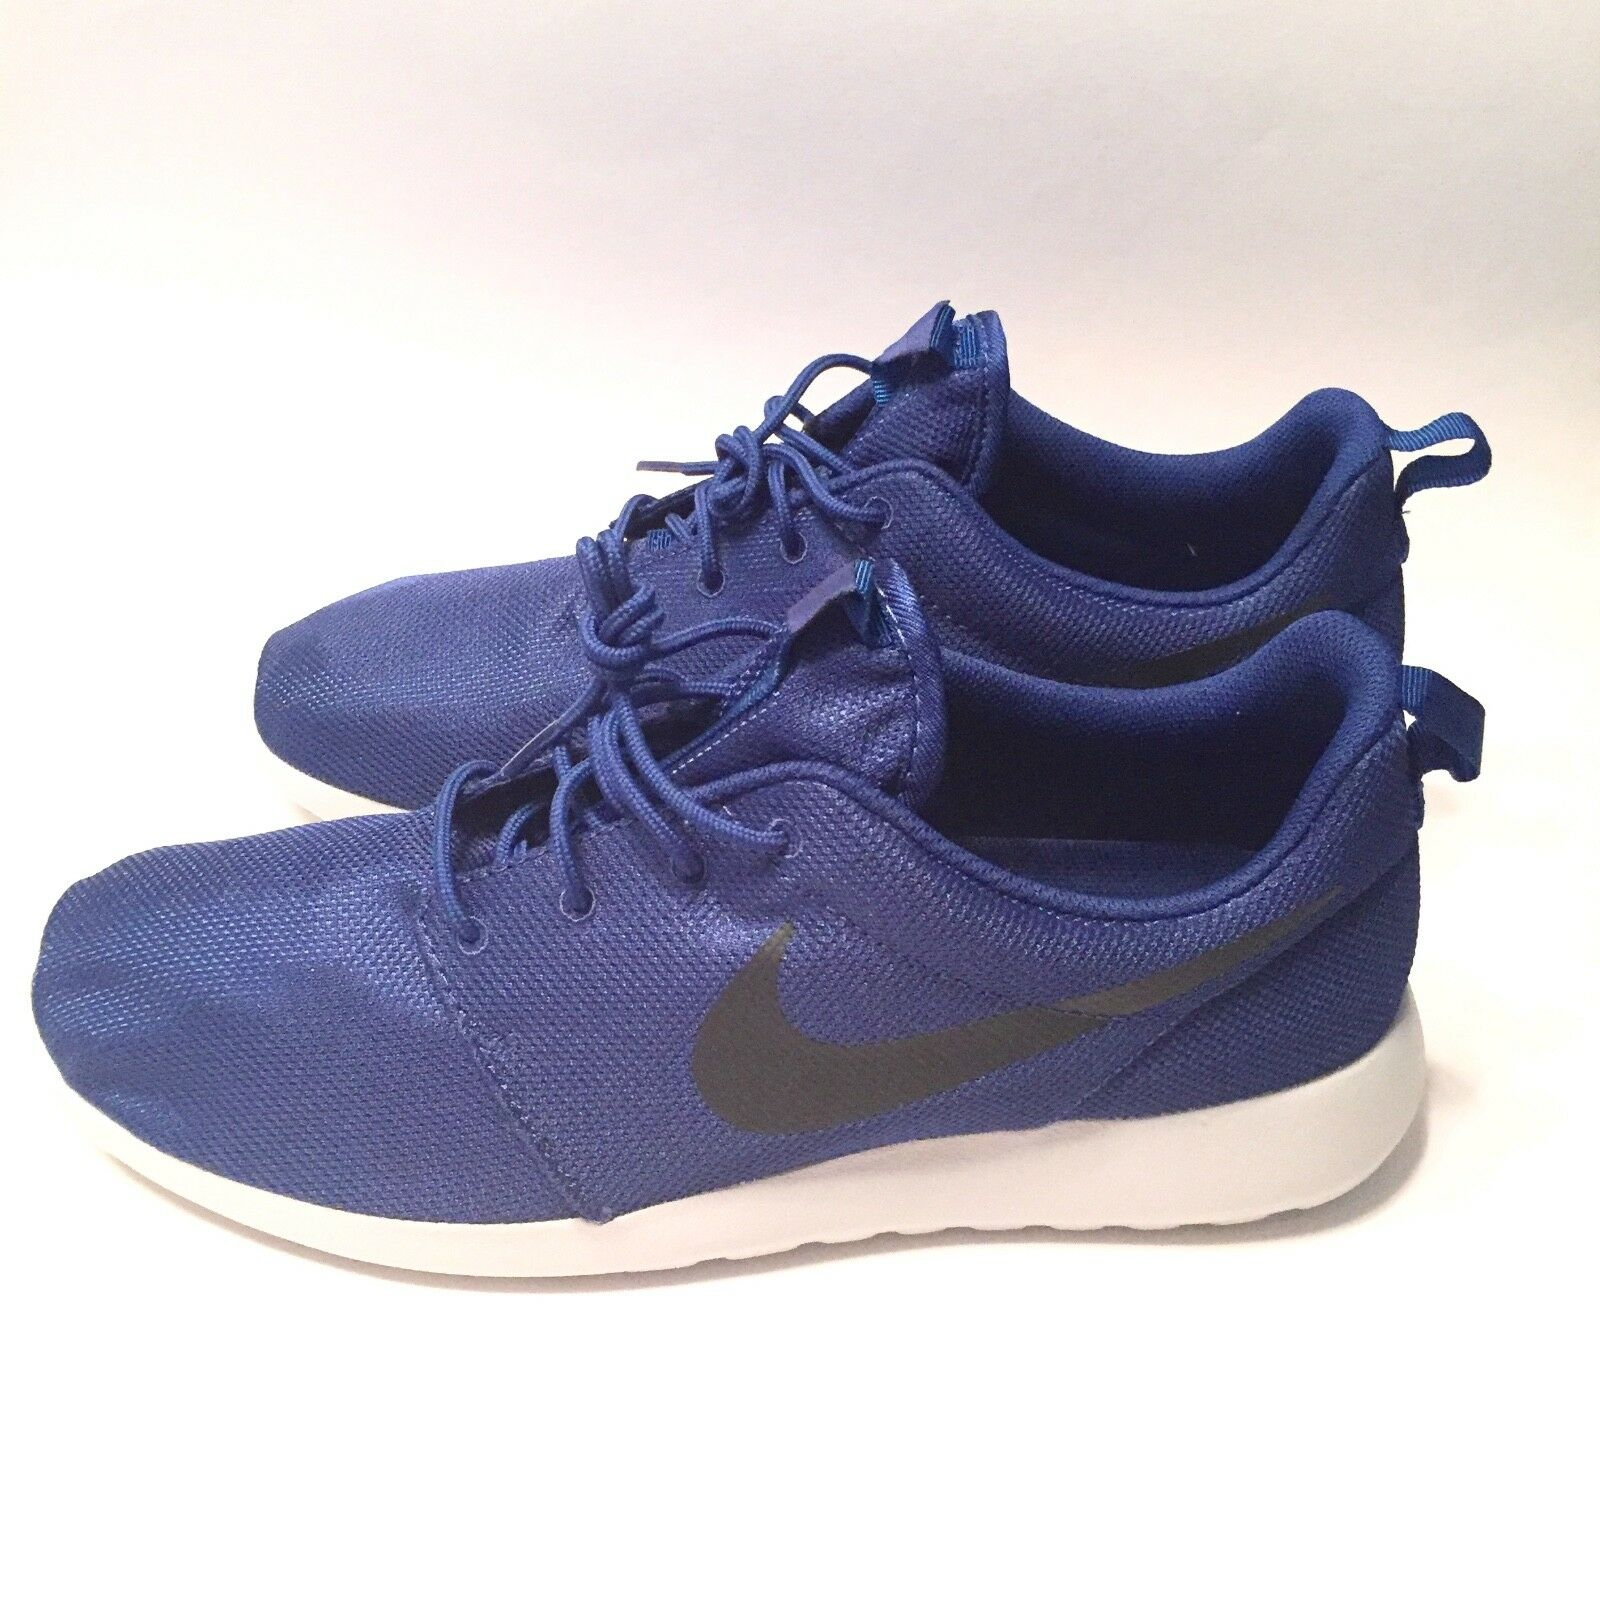 New Nike Roshe One Size 11.5 bluee White Running shoes Sneakers